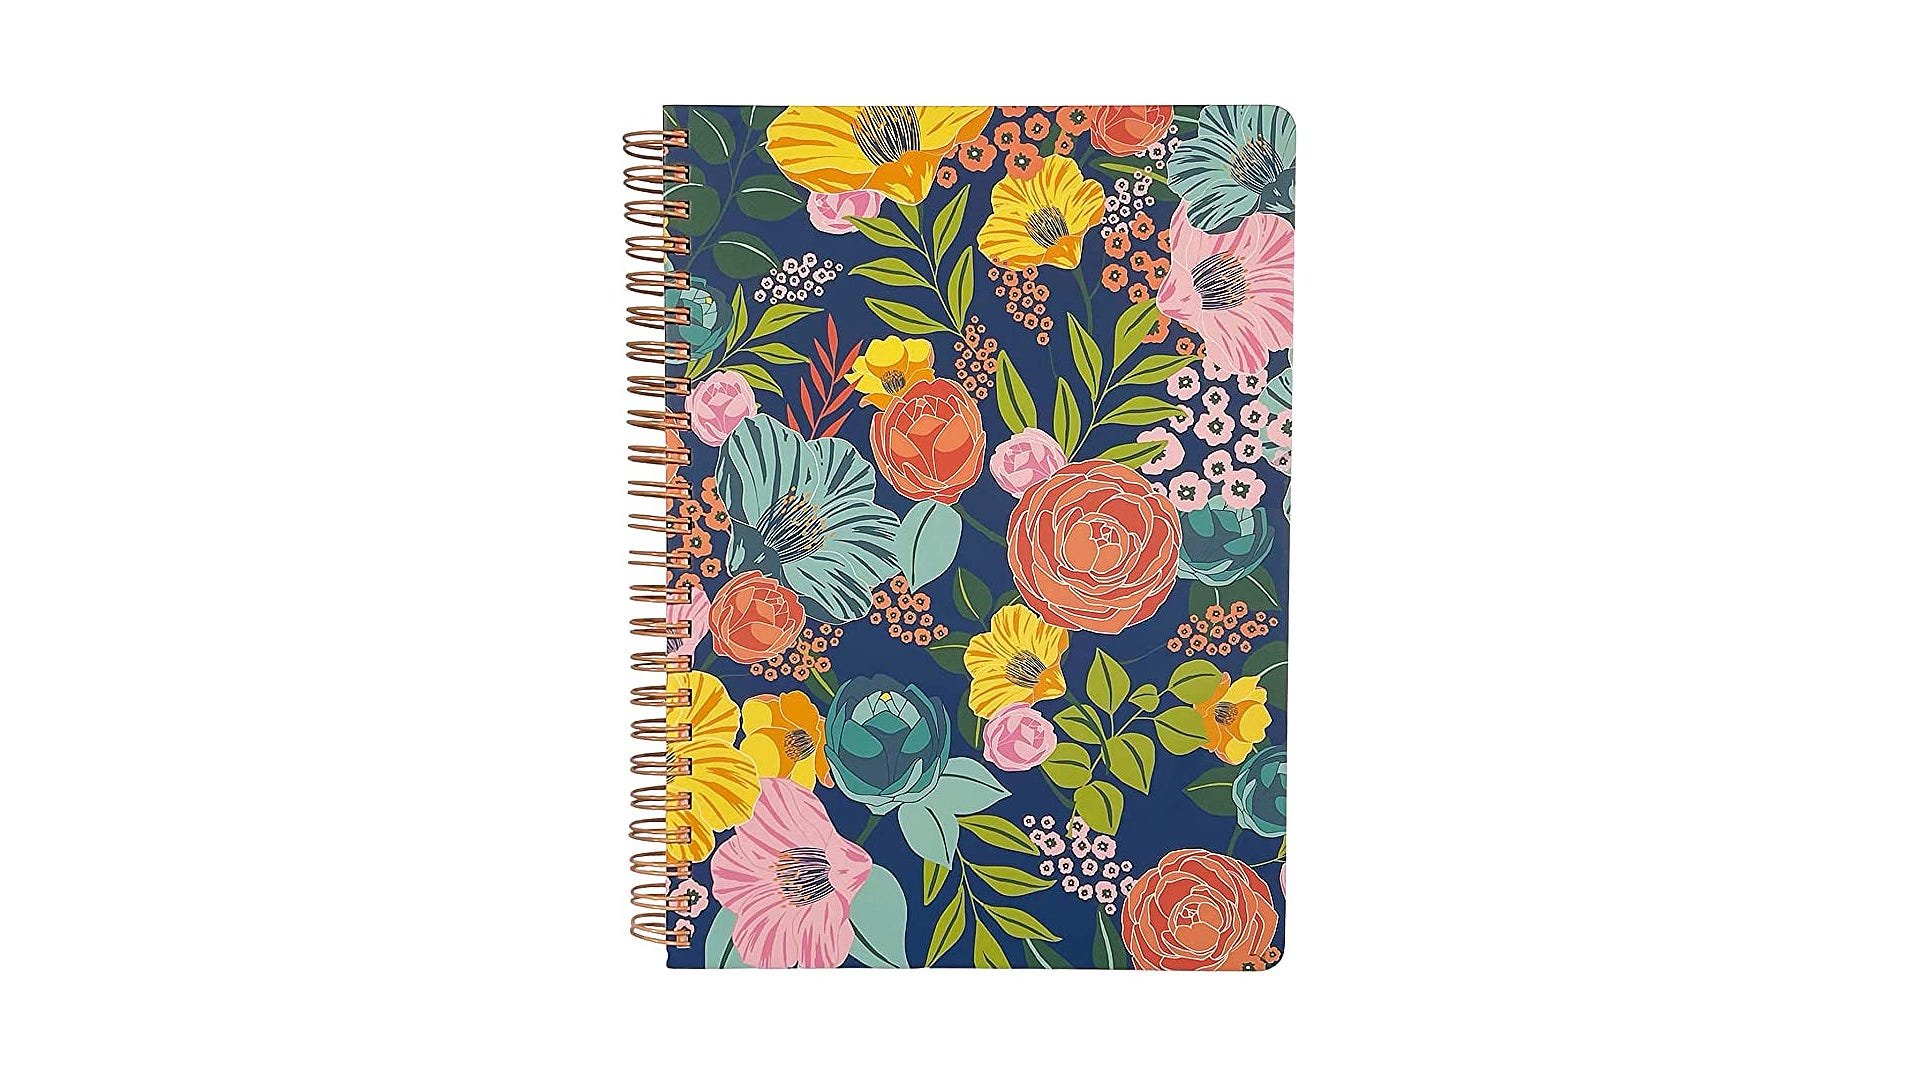 floral covered spiral bound notebook white background